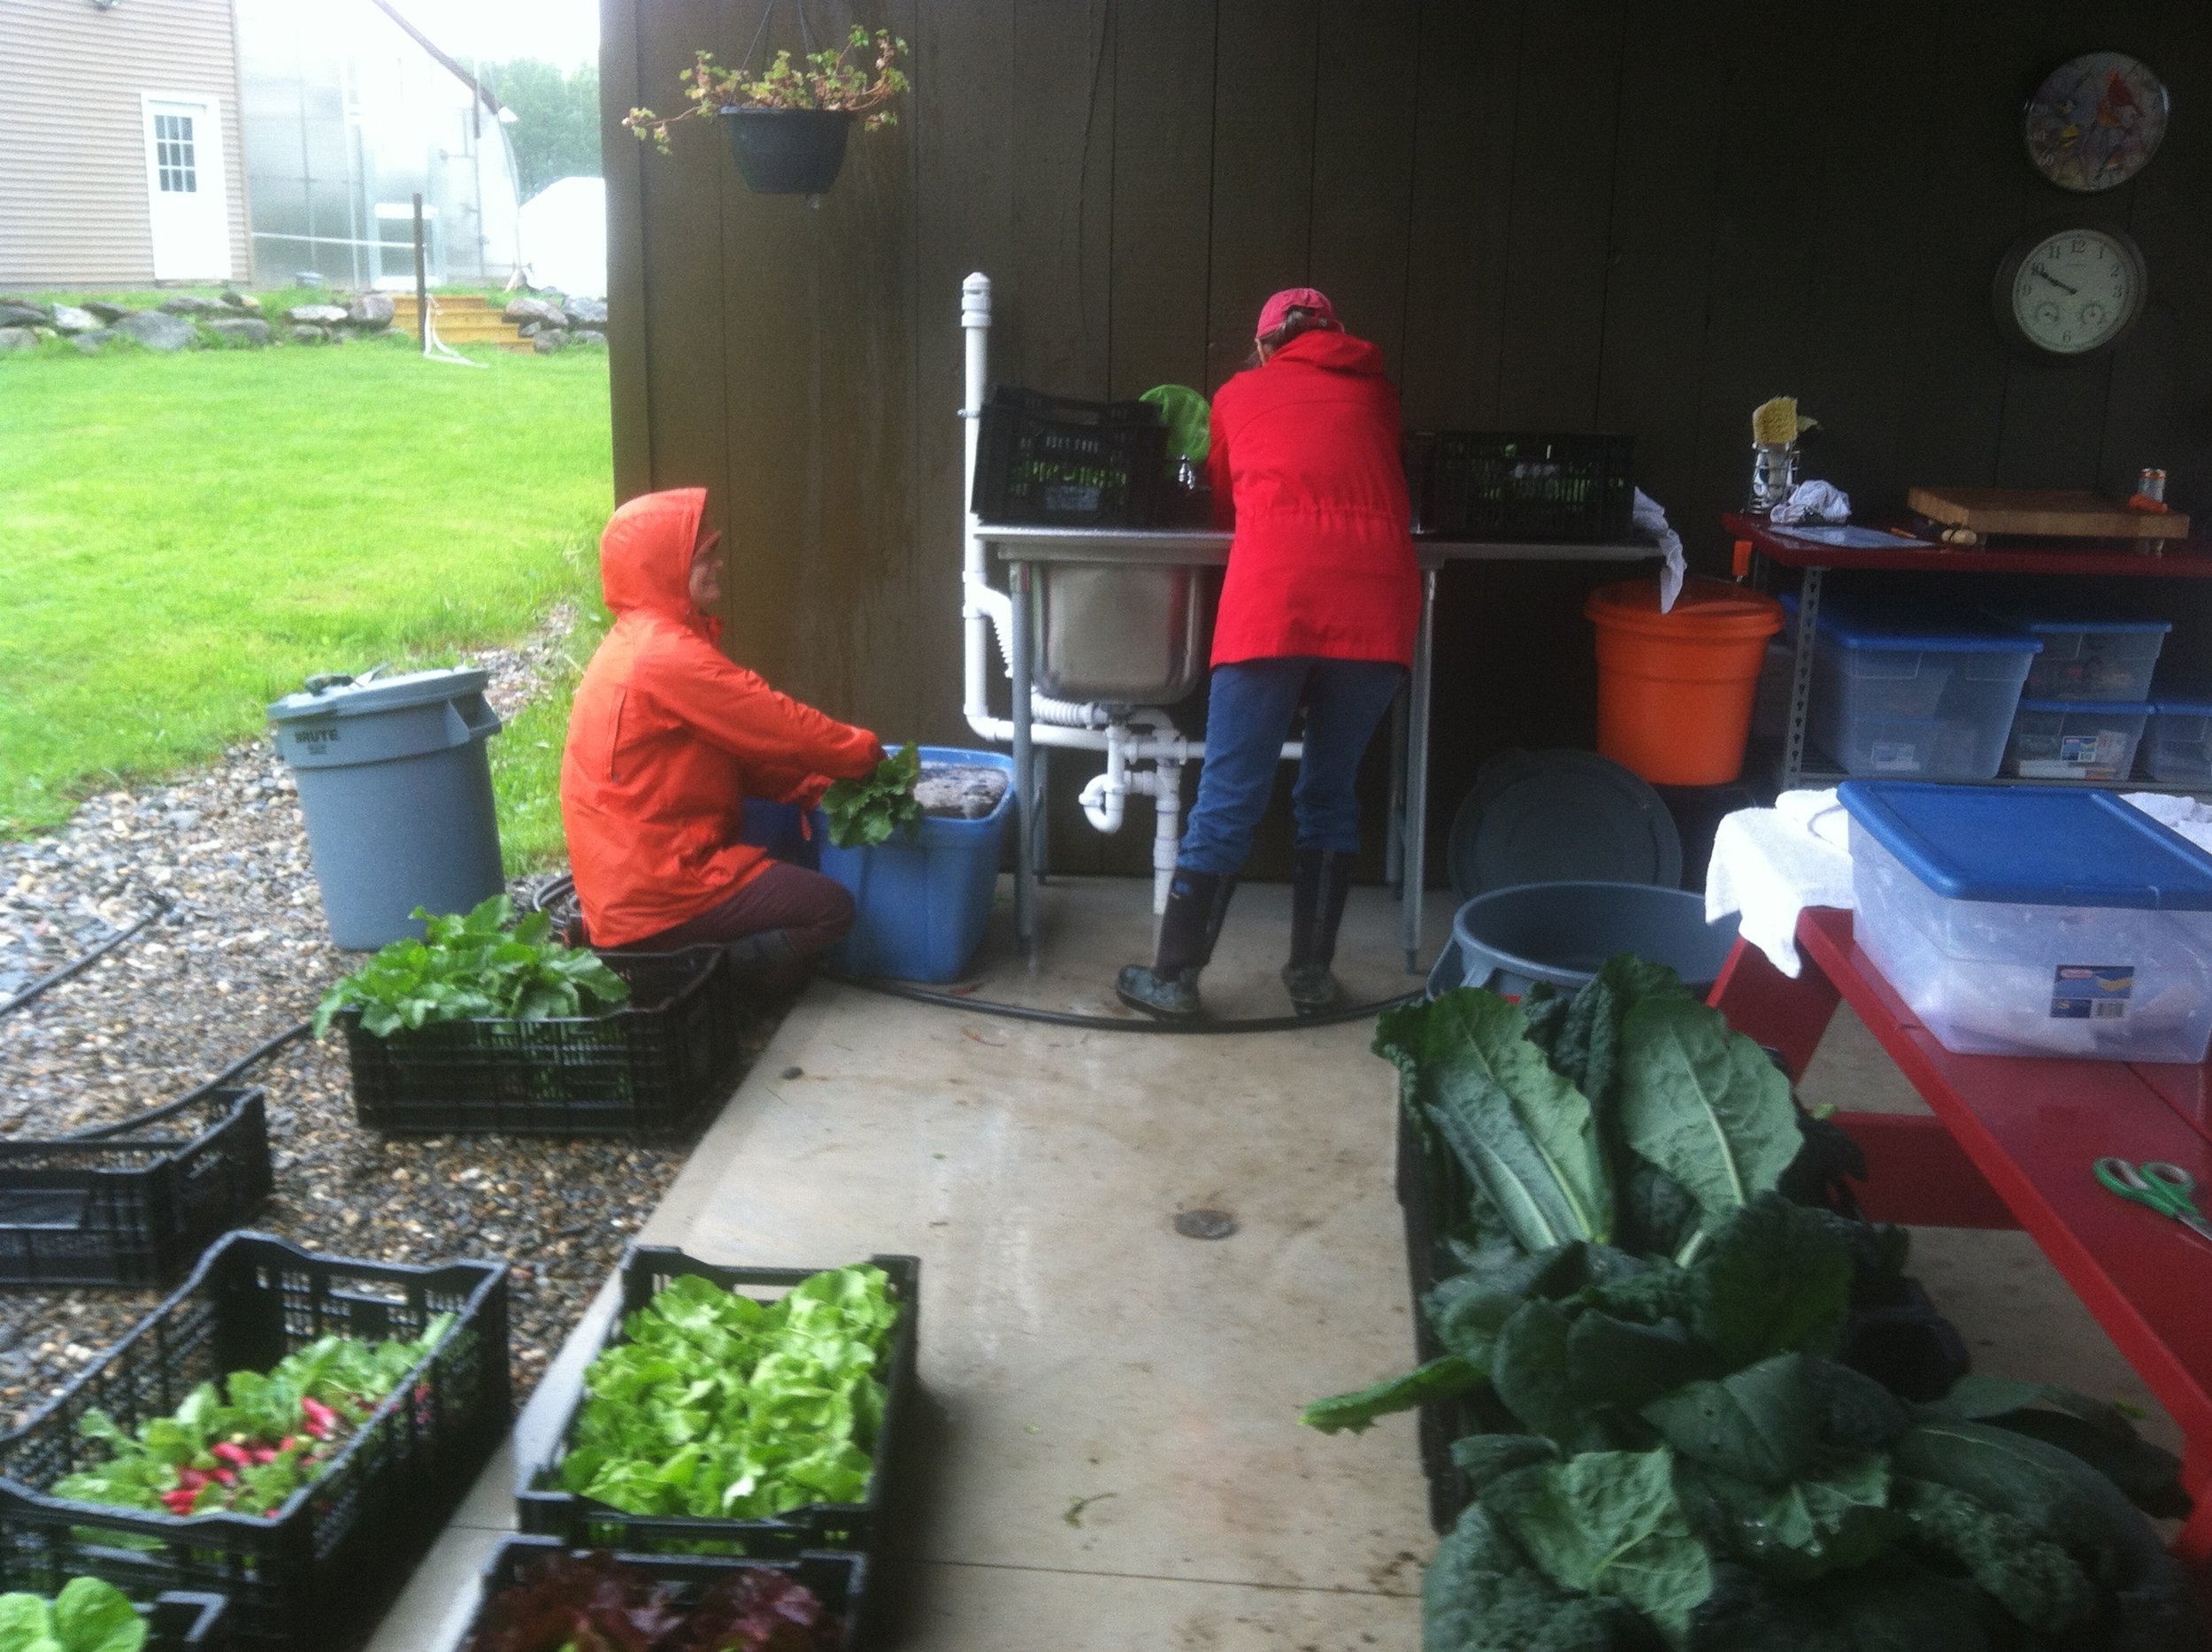 Laurel and Carol cleaning vegetables.